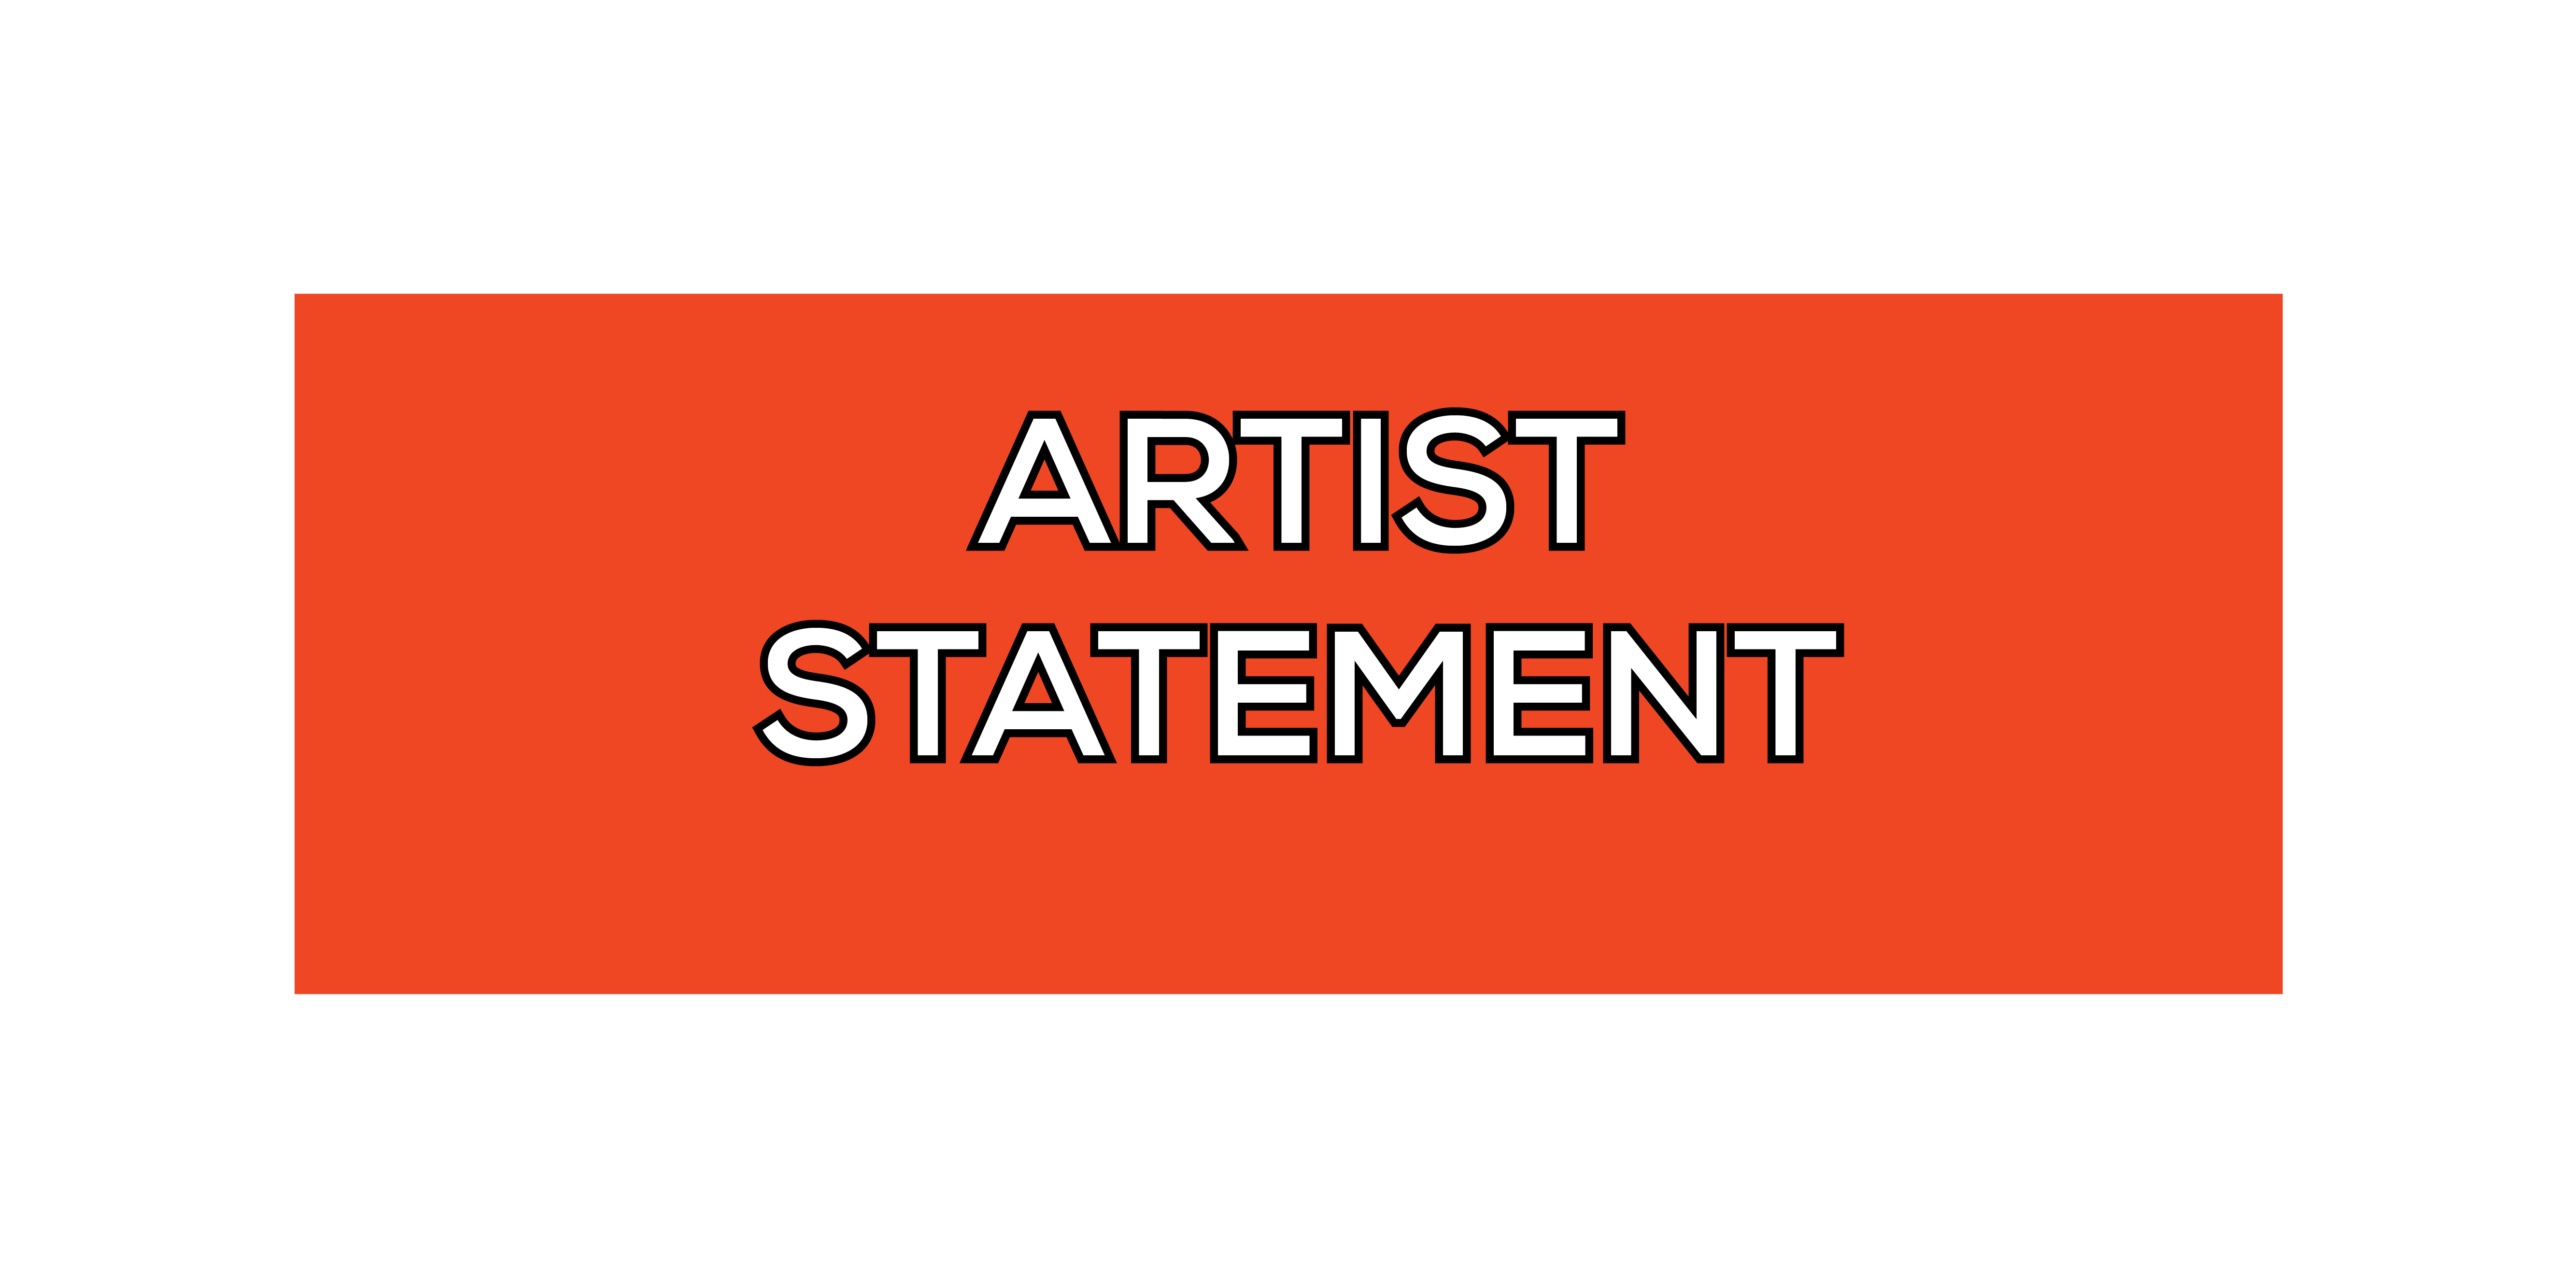 Click this button to download the artist statement